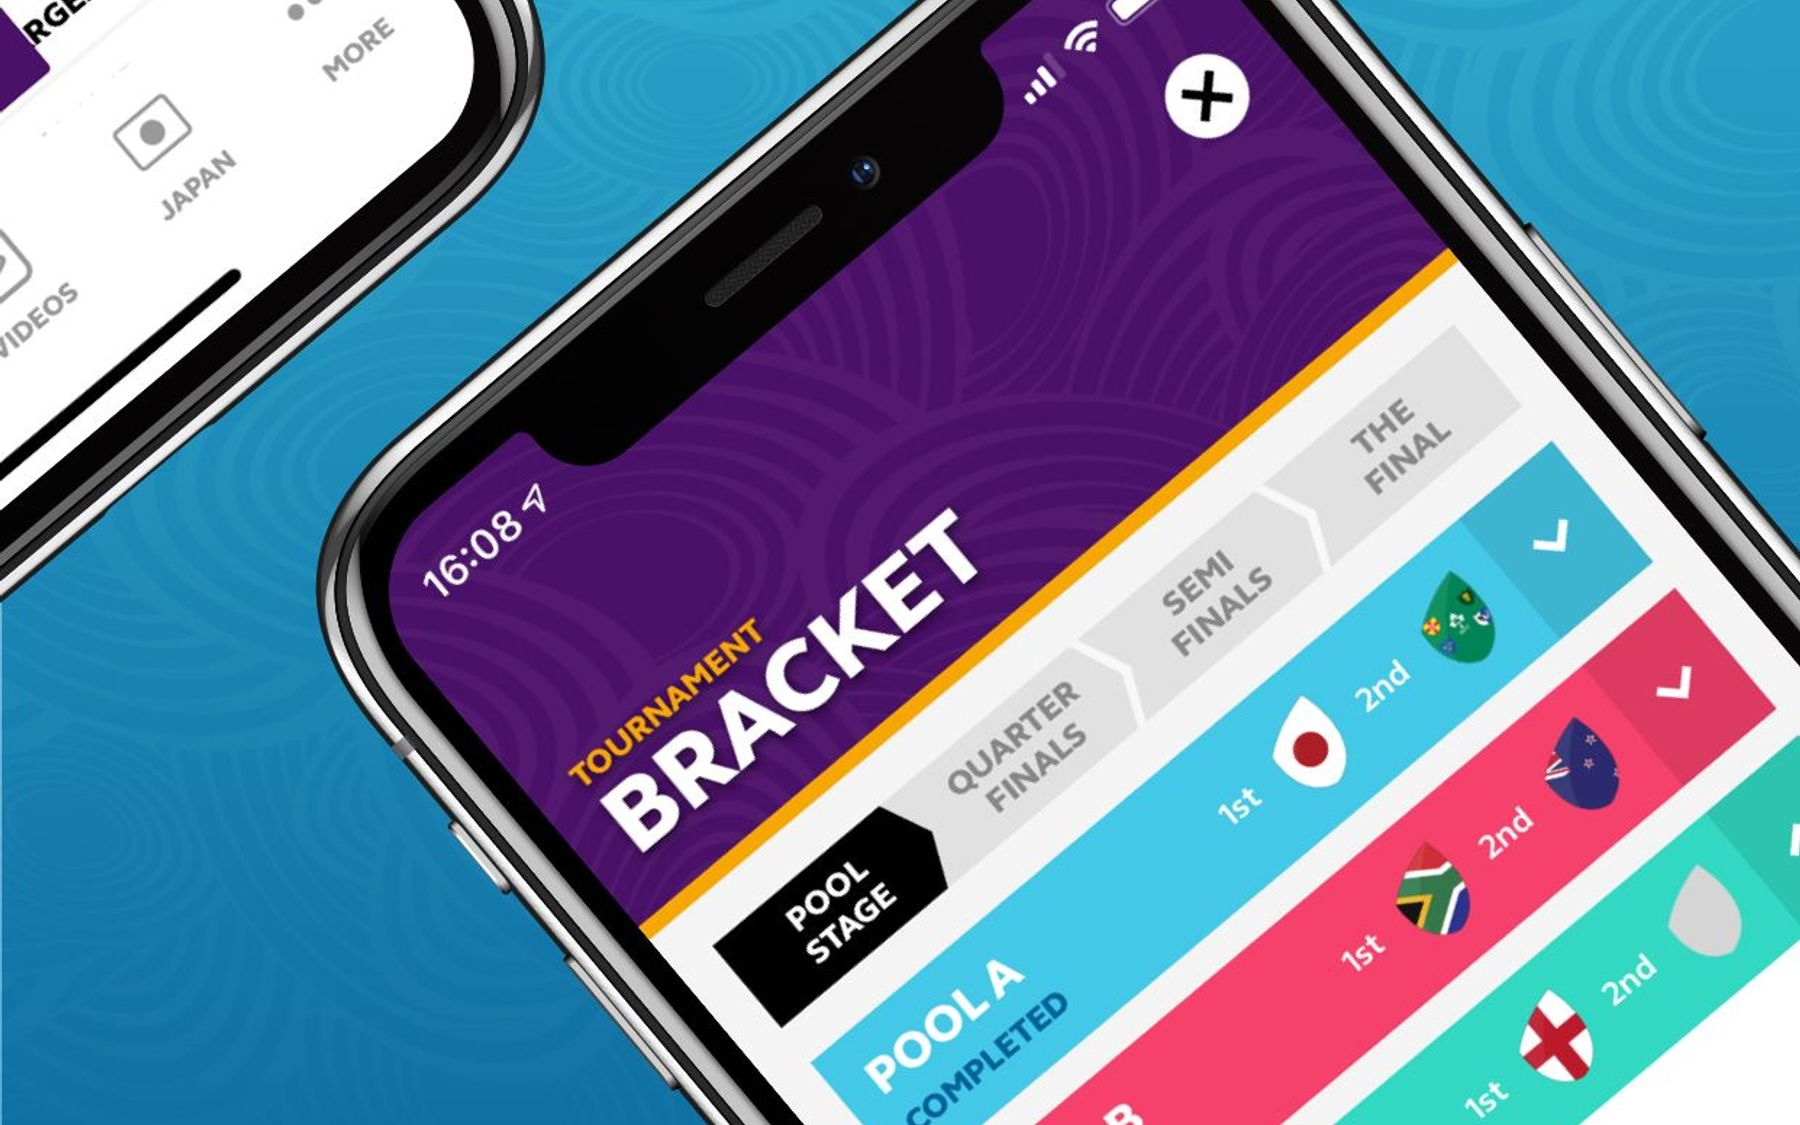 Tournament bracket app visual